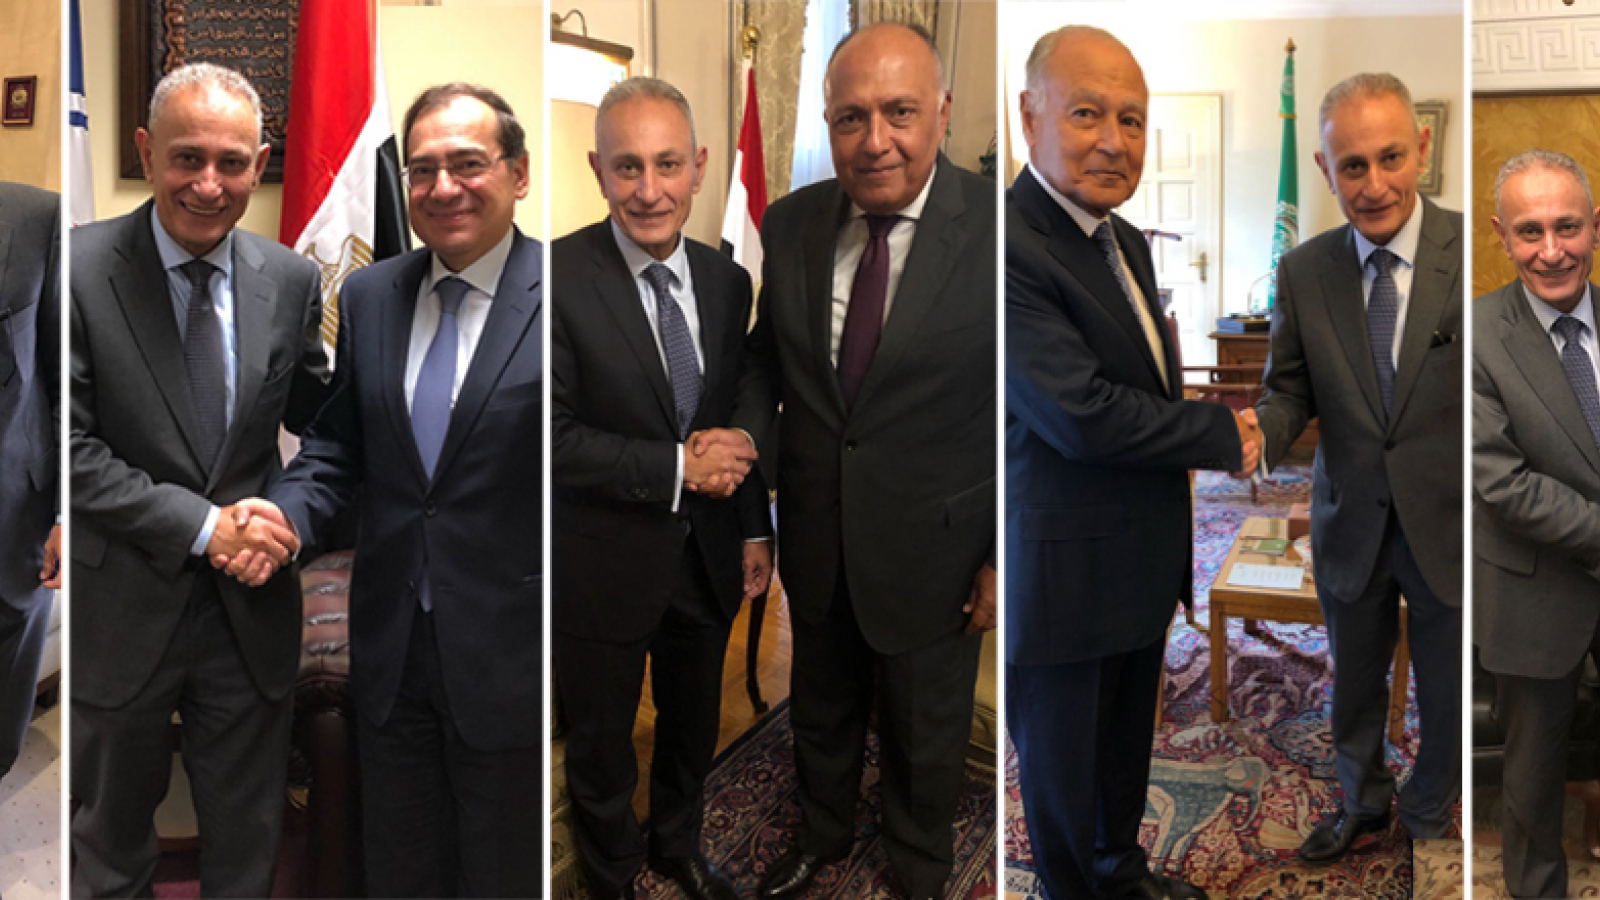 Reaching out to UfM Member States: Secretary General Nasser Kamel holds his first official visit to Egypt